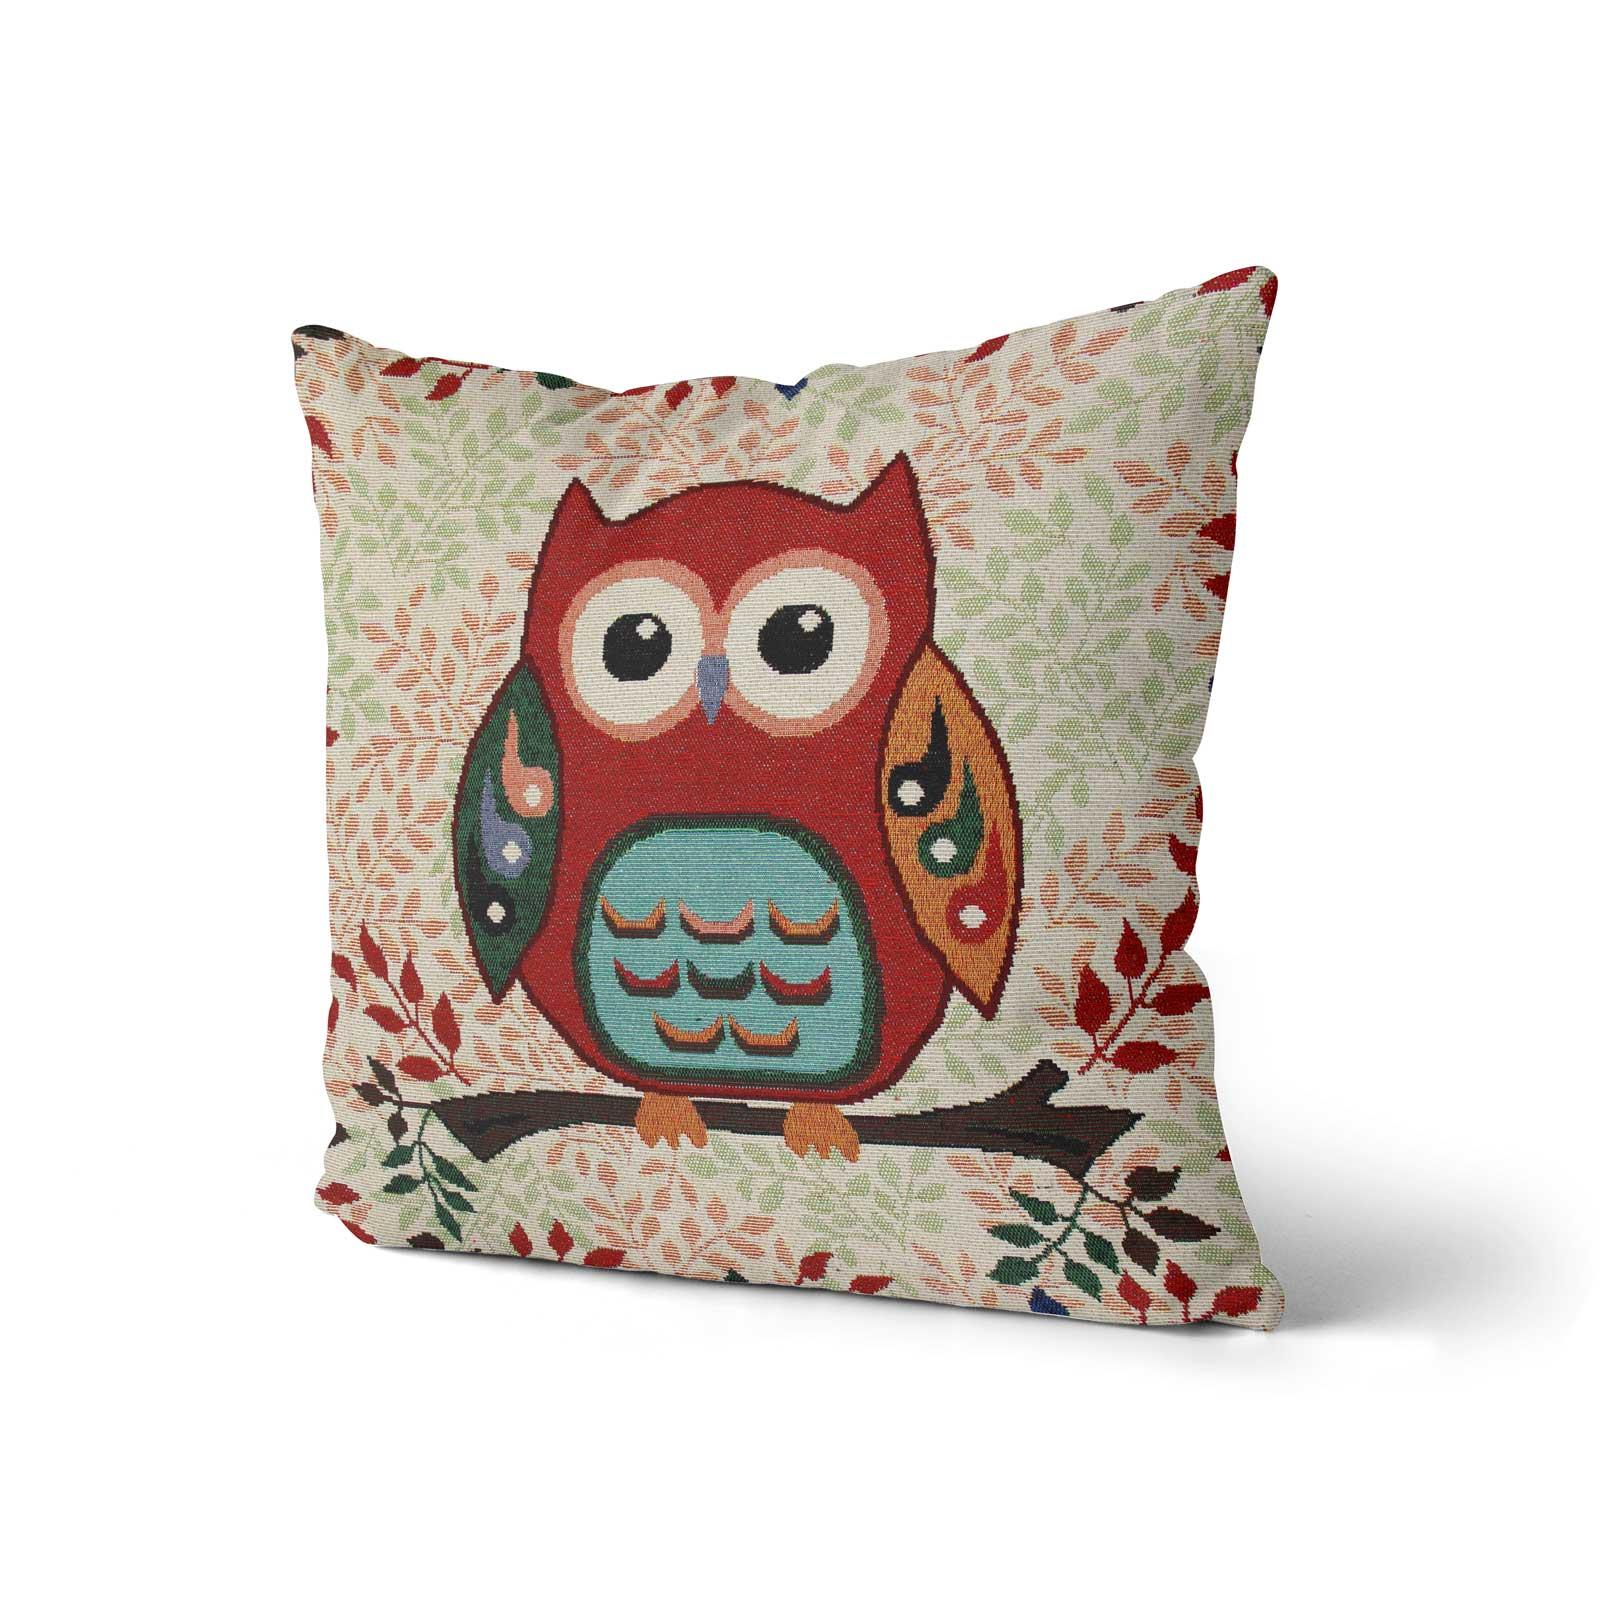 Tapestry-Cushion-Covers-Vintage-Pillow-Cover-Collection-18-034-45cm-Filled-Cushions thumbnail 211